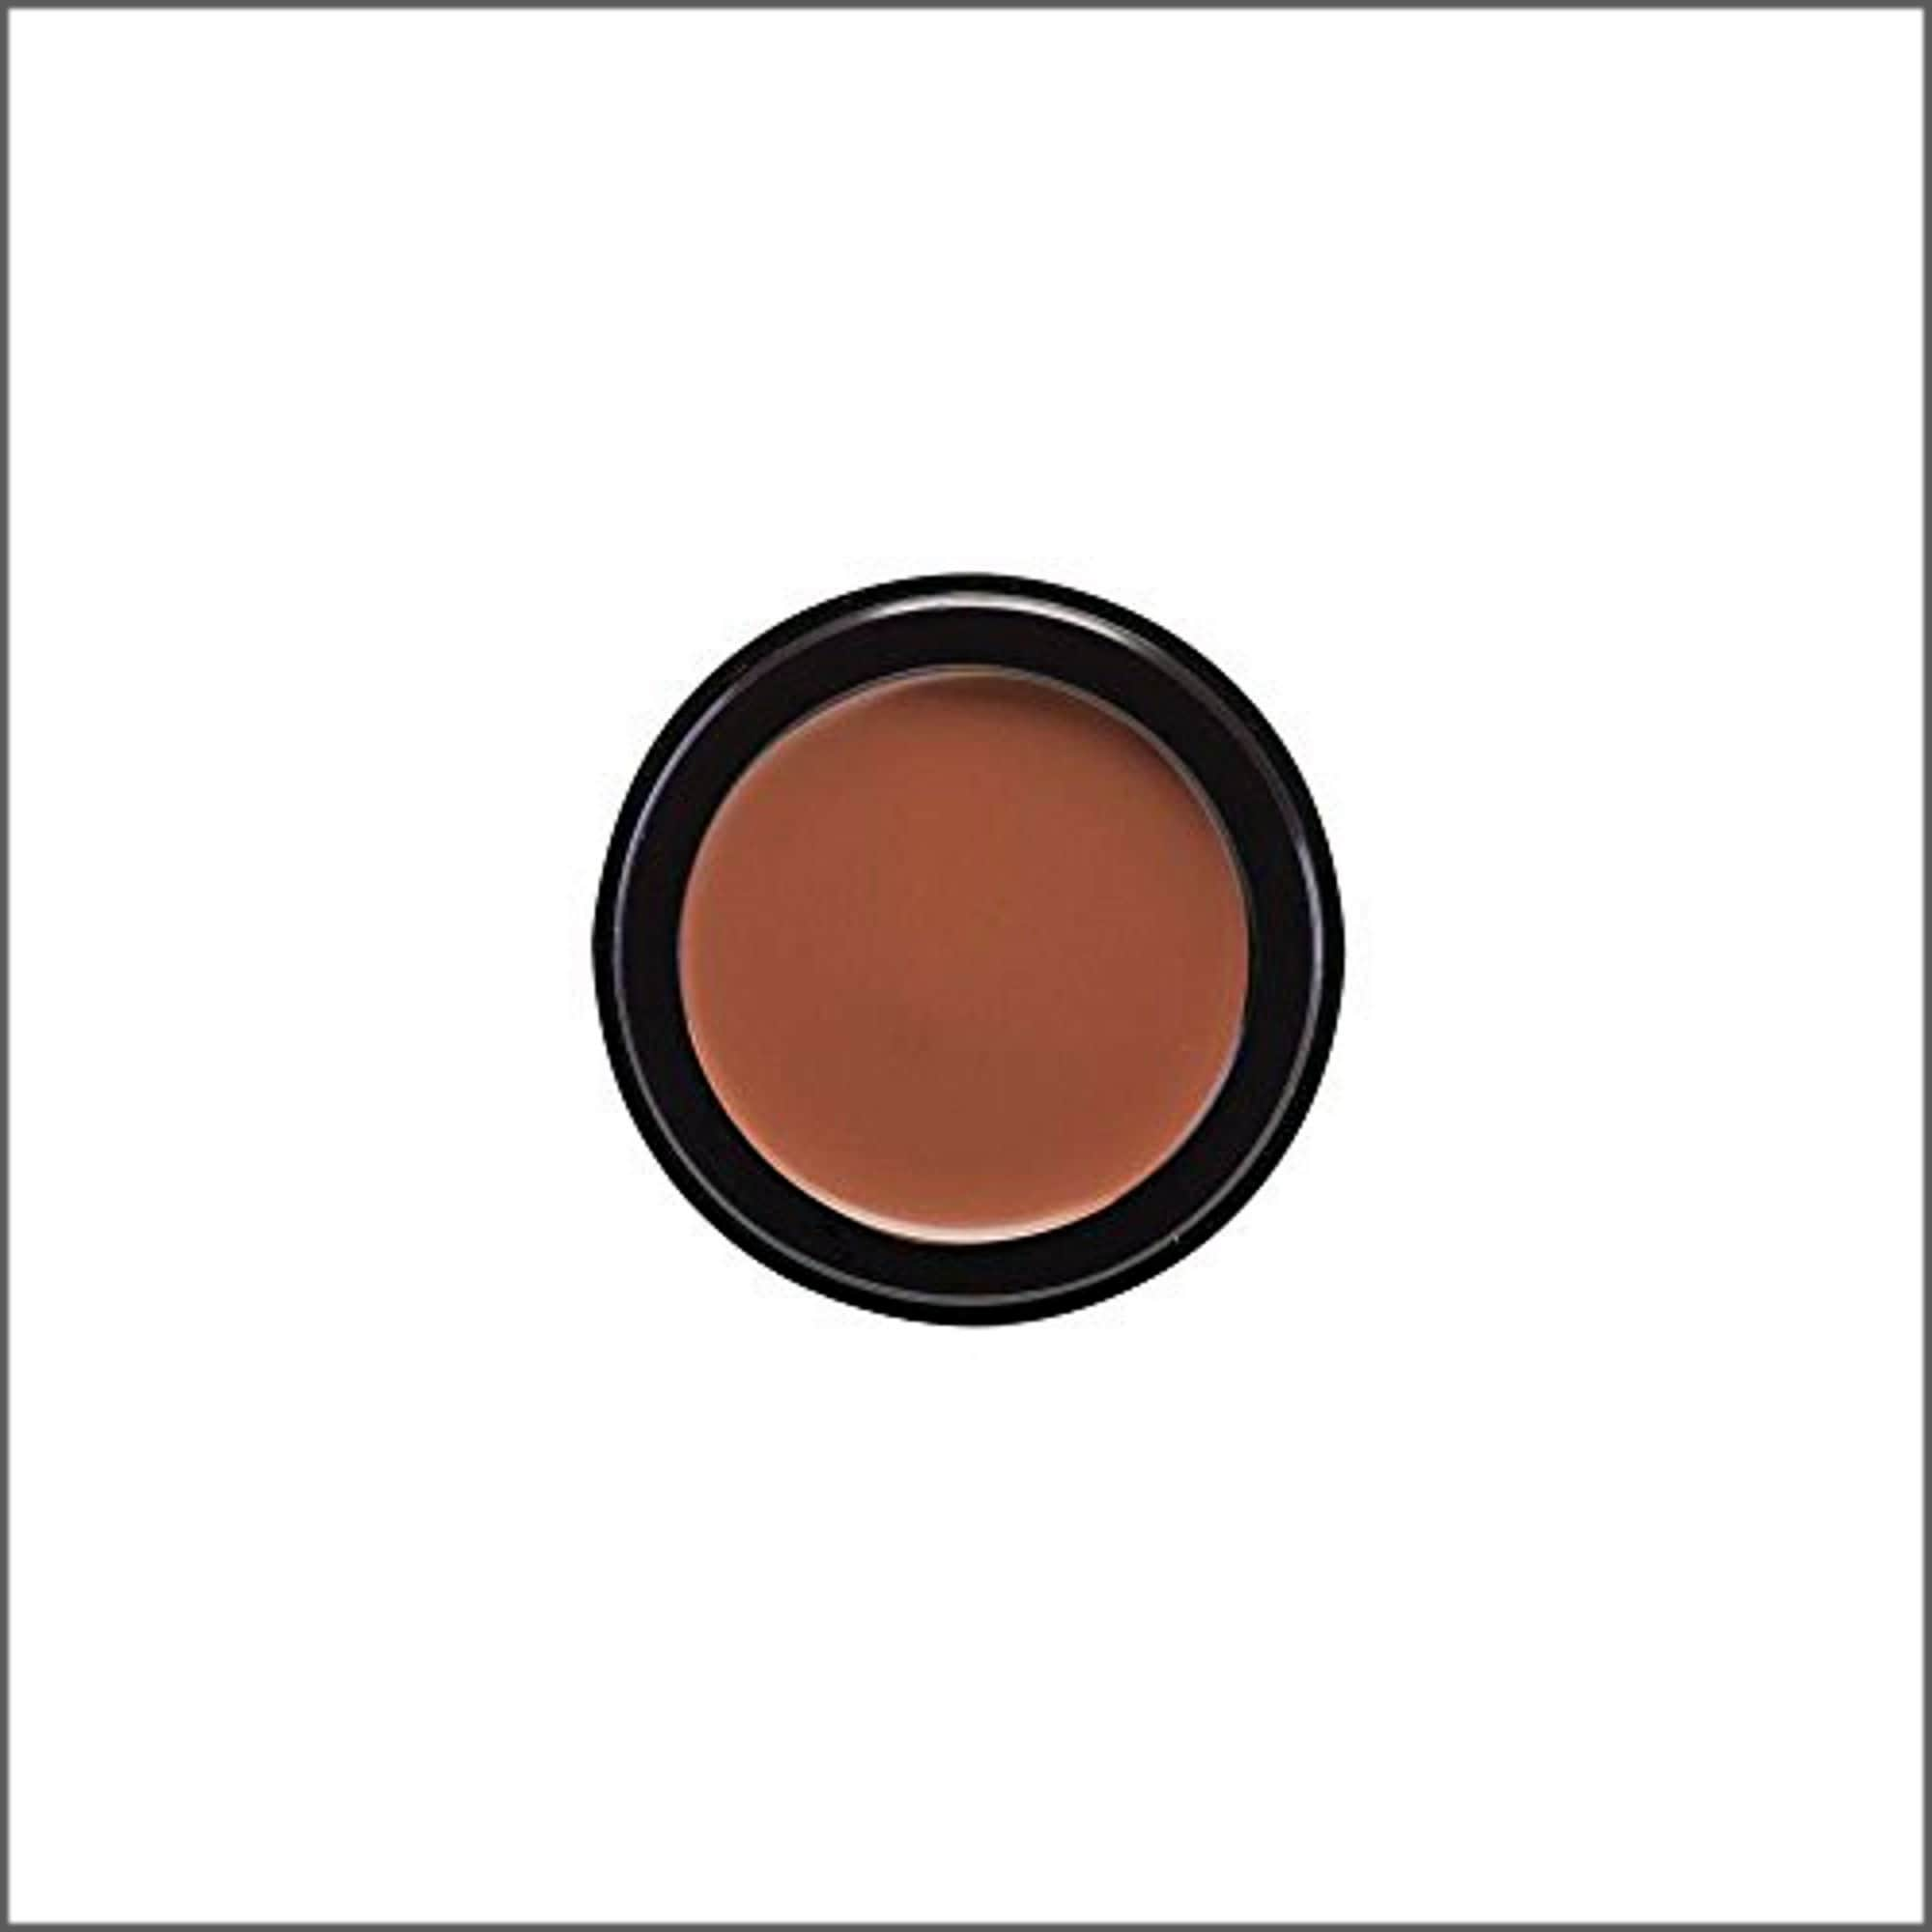 iman cosmetics second to none for dark skin tone